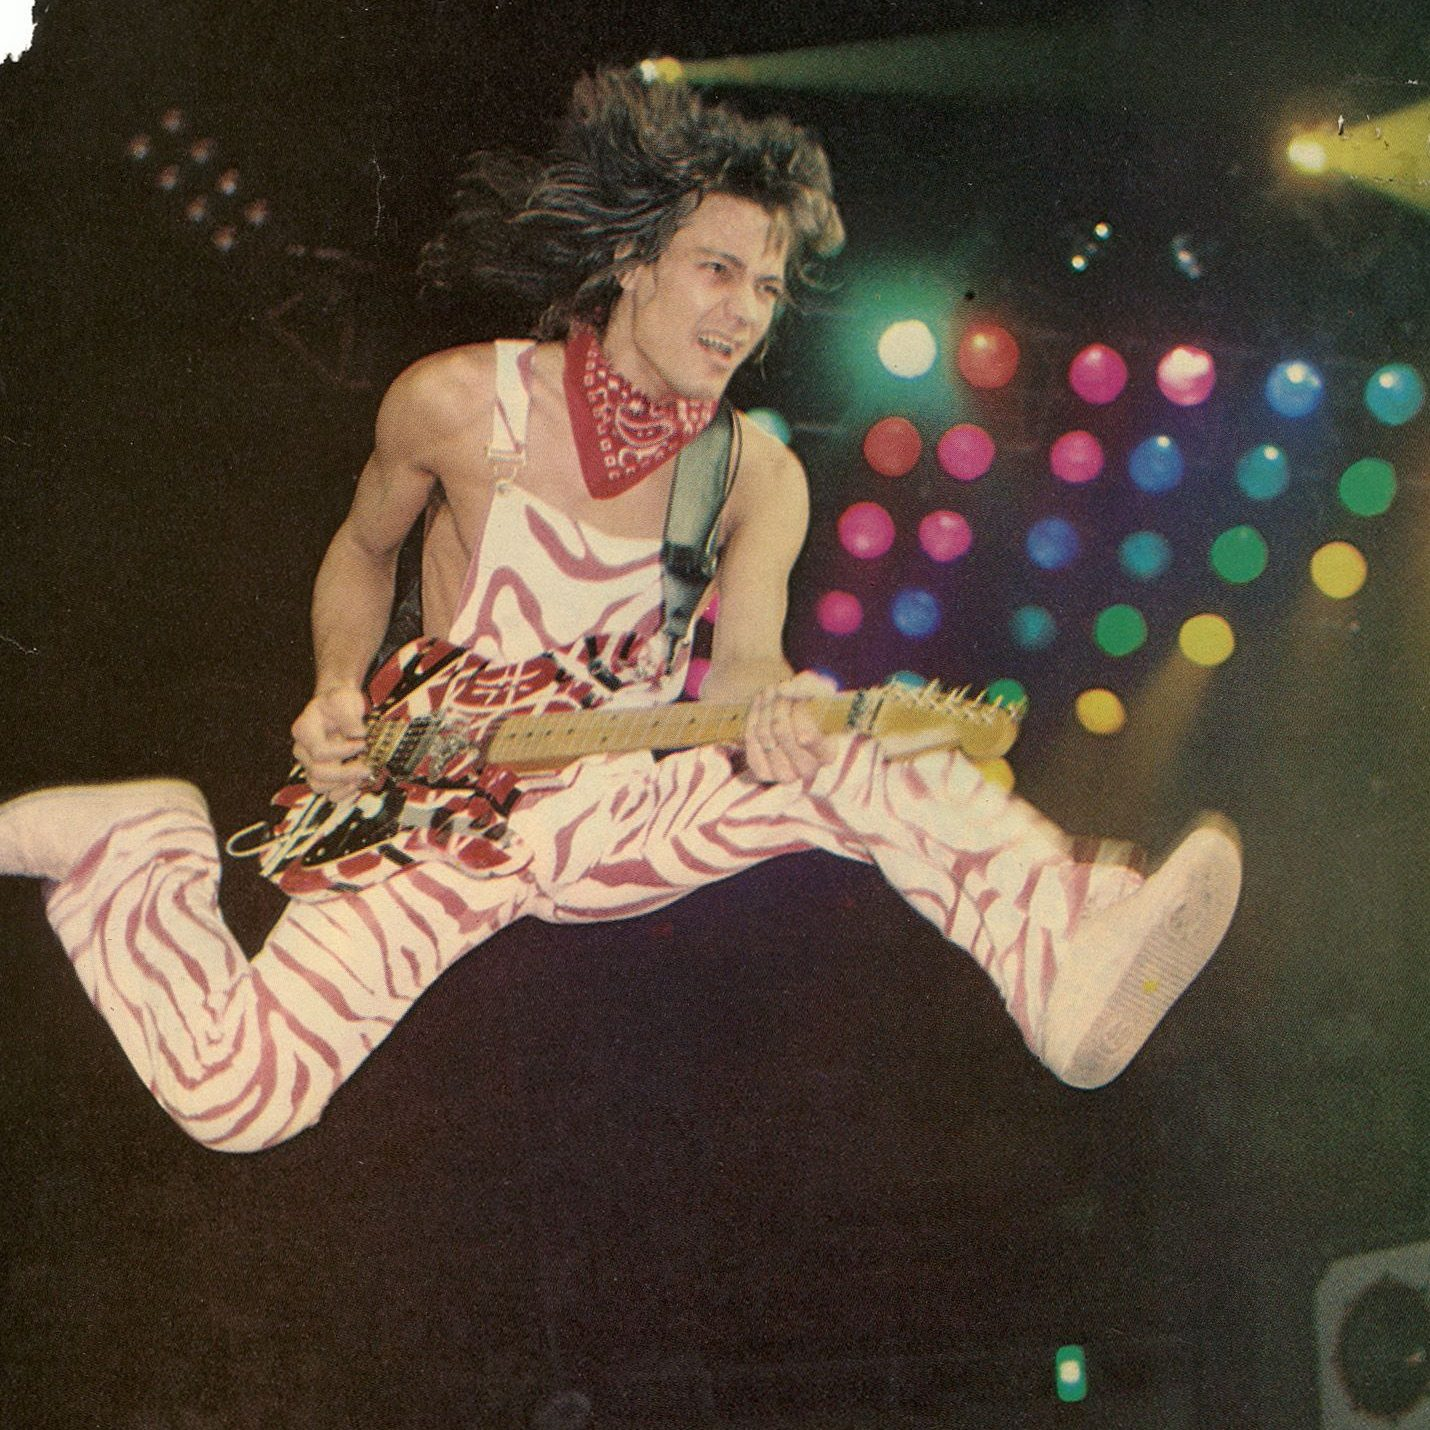 2b9c123ede9ebbc9a4398236be96eaf5 e1602503111673 20 Things You Might Not Have Known About The Late, Great Eddie Van Halen